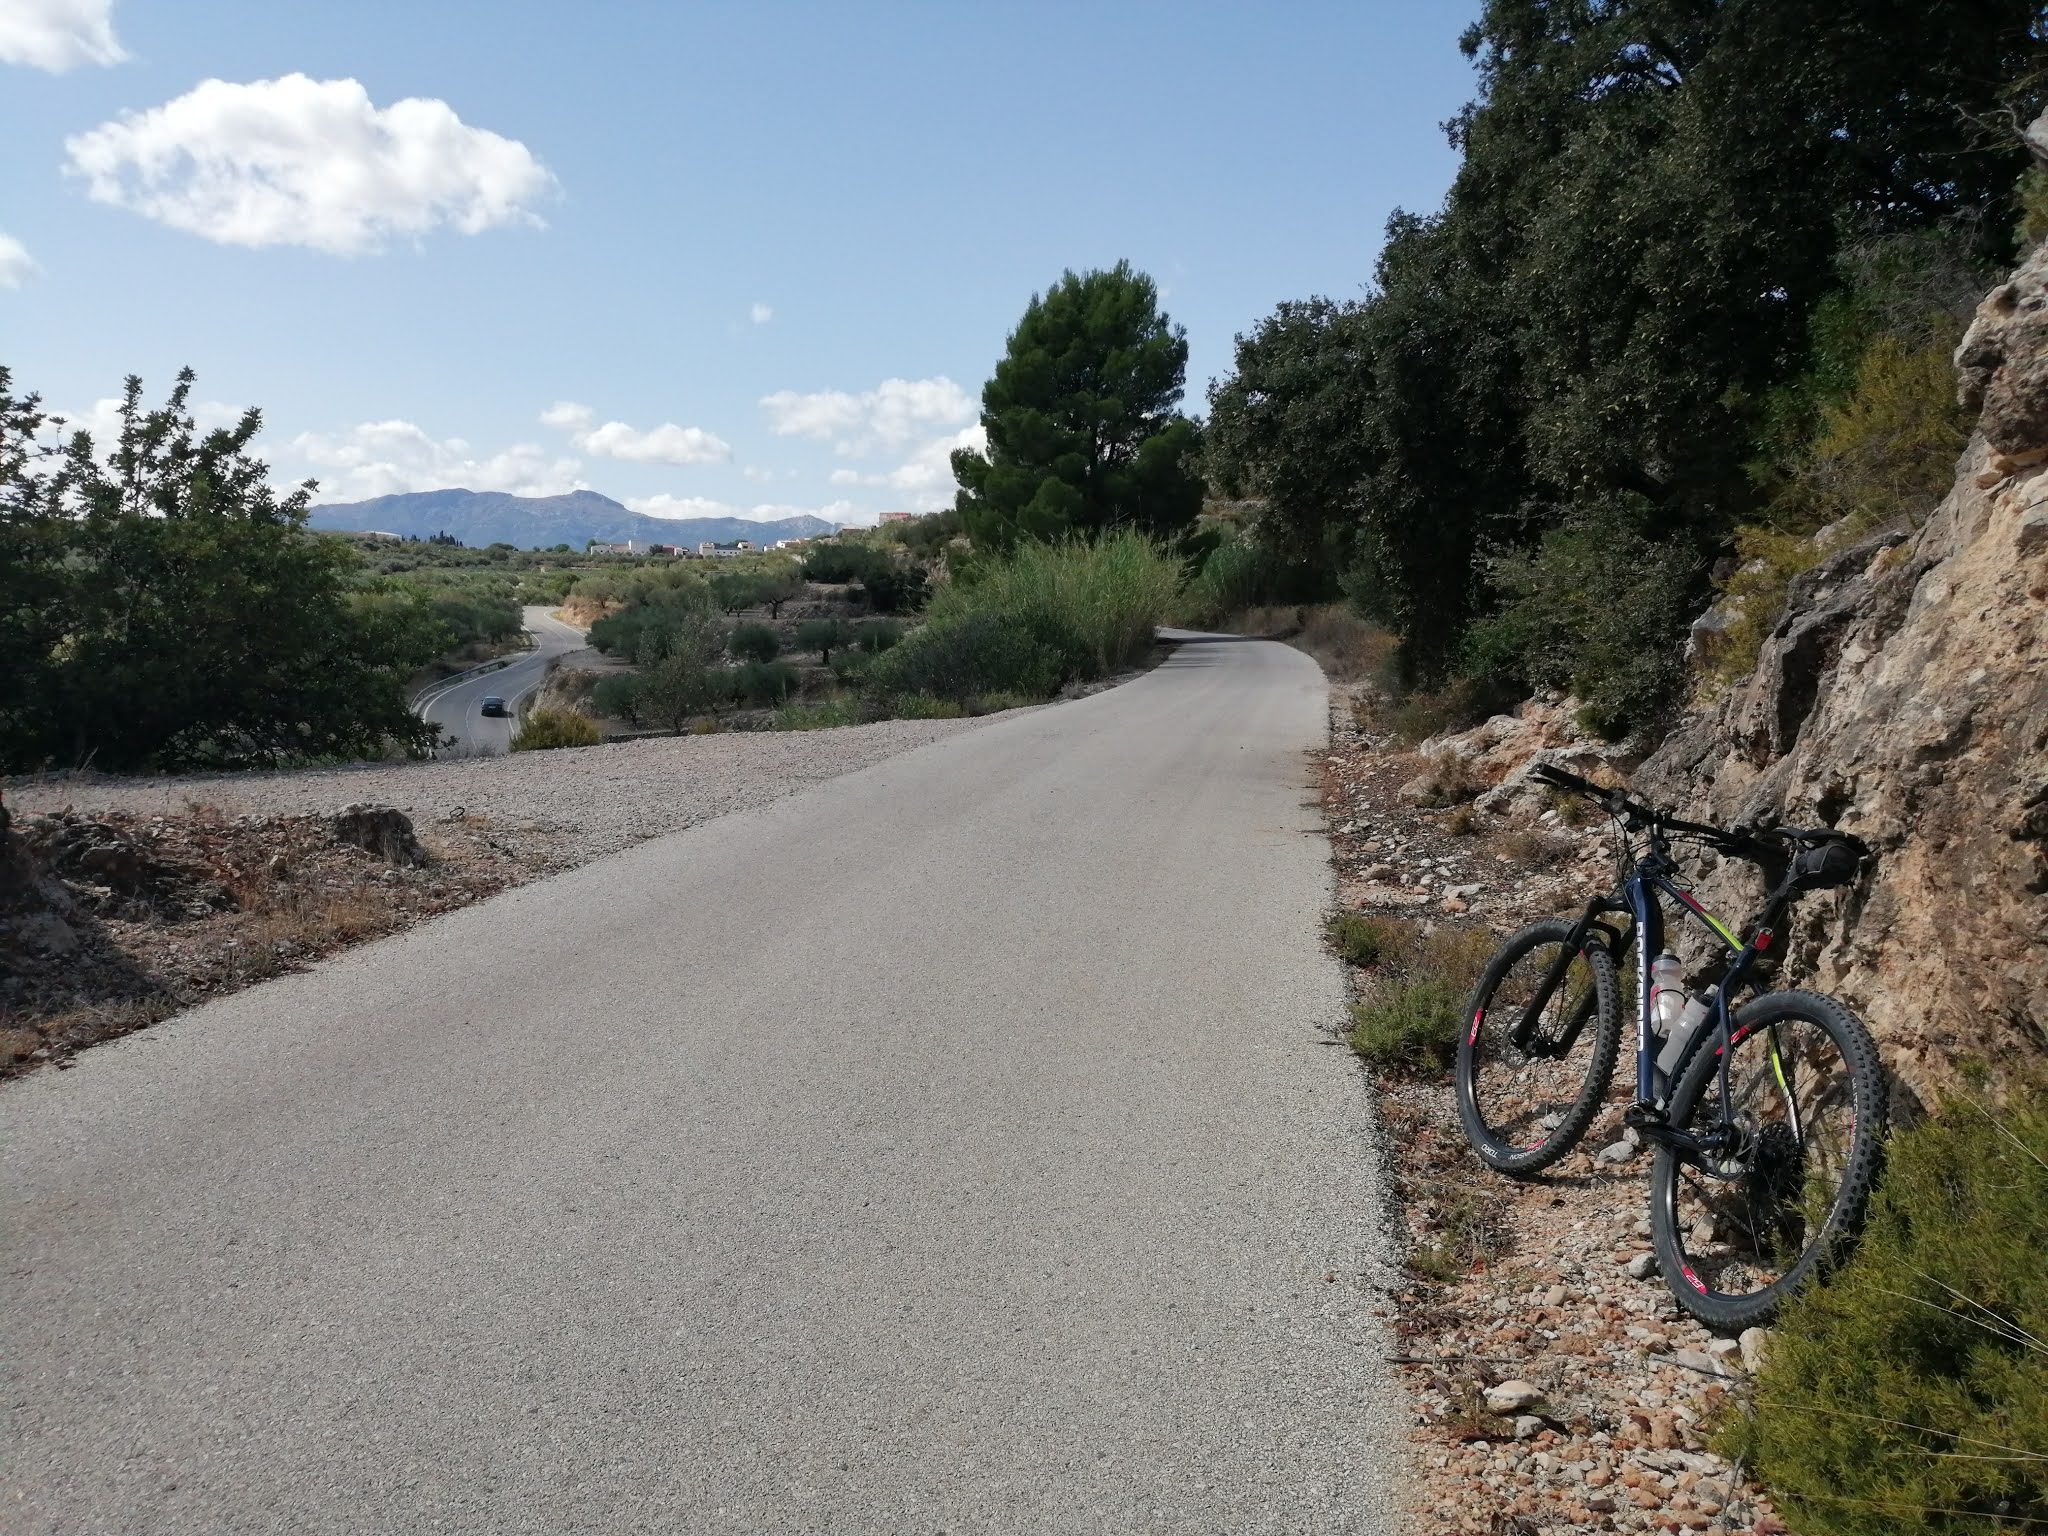 The approach to Beniarrés from Lorcha on the Serpis Greenway